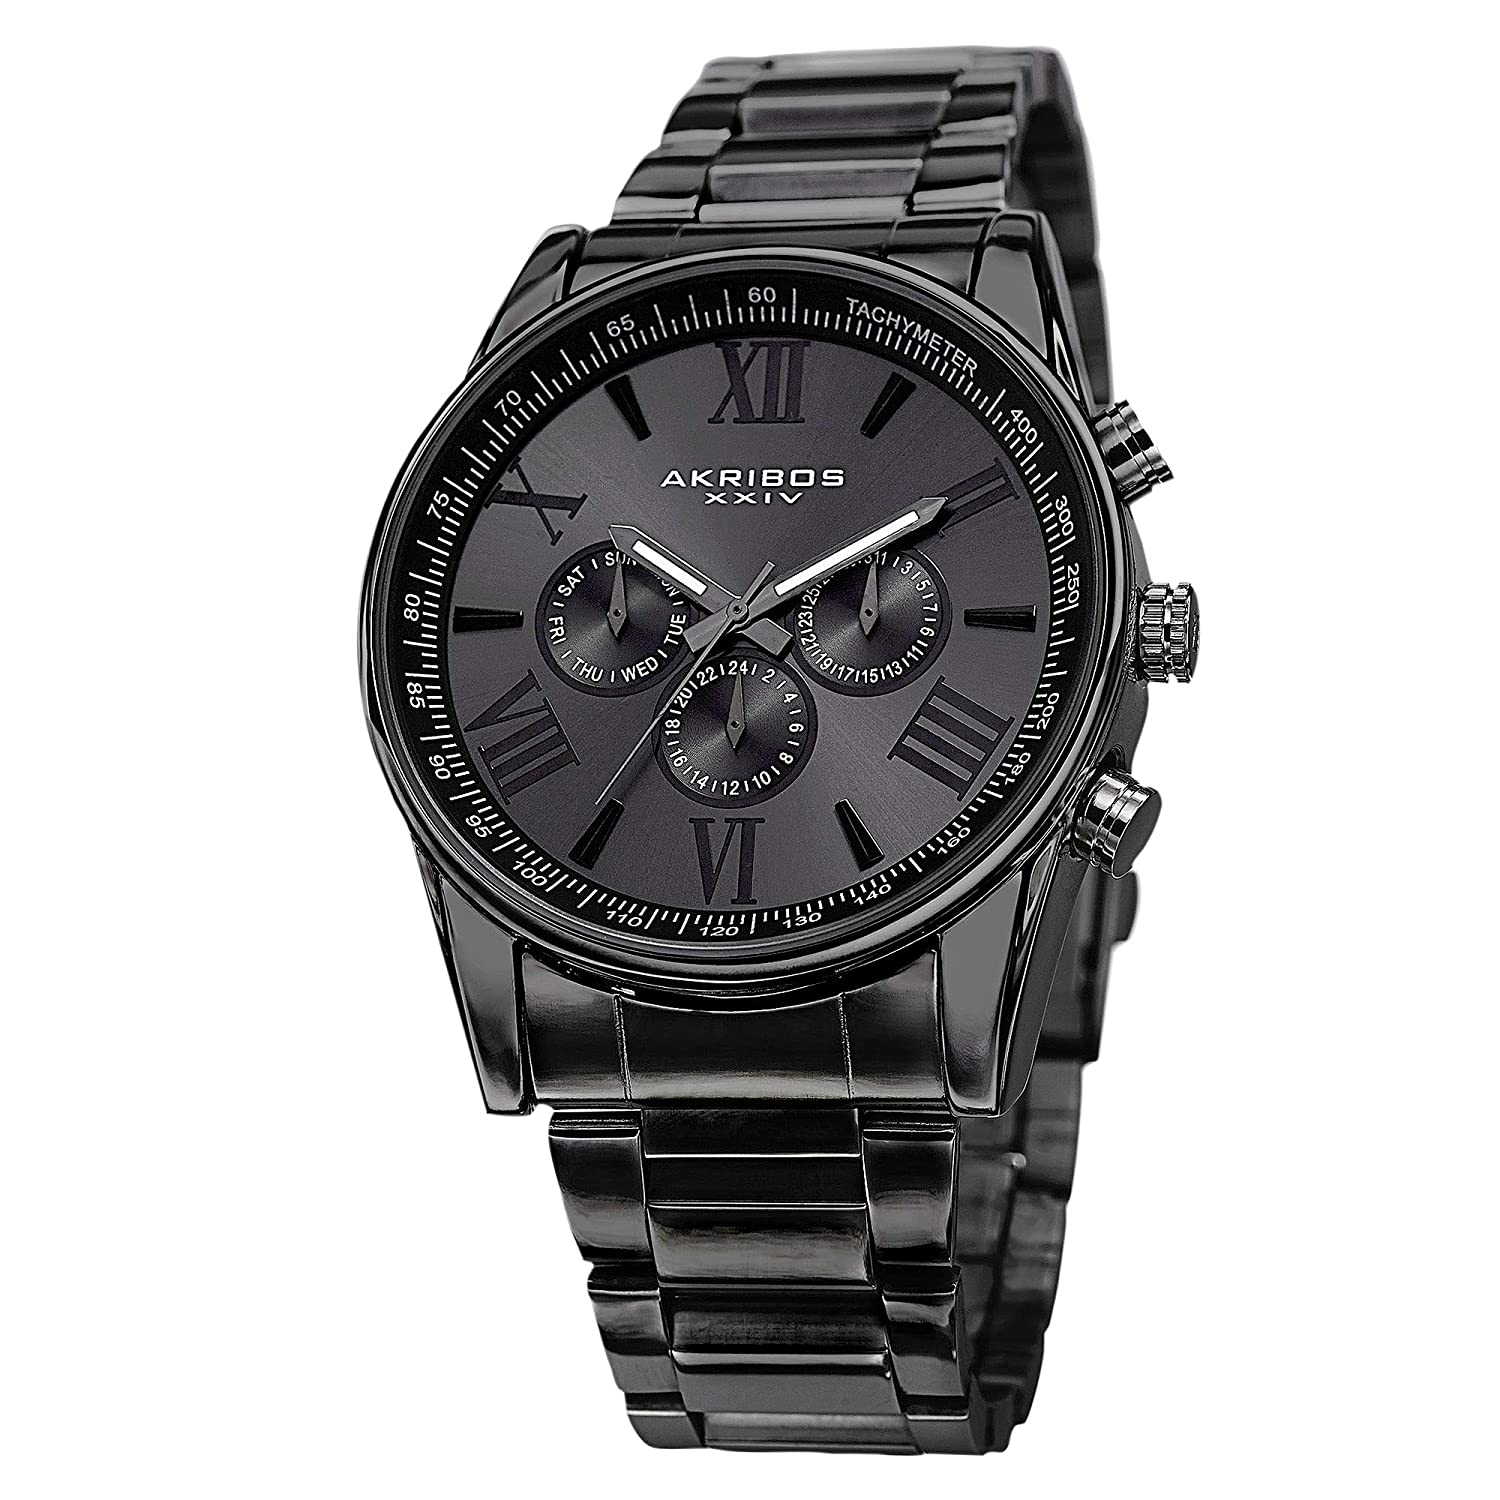 cad939da5 Akribos Multi-Function Stainless Steel Bracelet Watch - Three Hand Movement  with Two Time Zones and Date Complication - Men's Ultimate Swiss Watch -  AK736